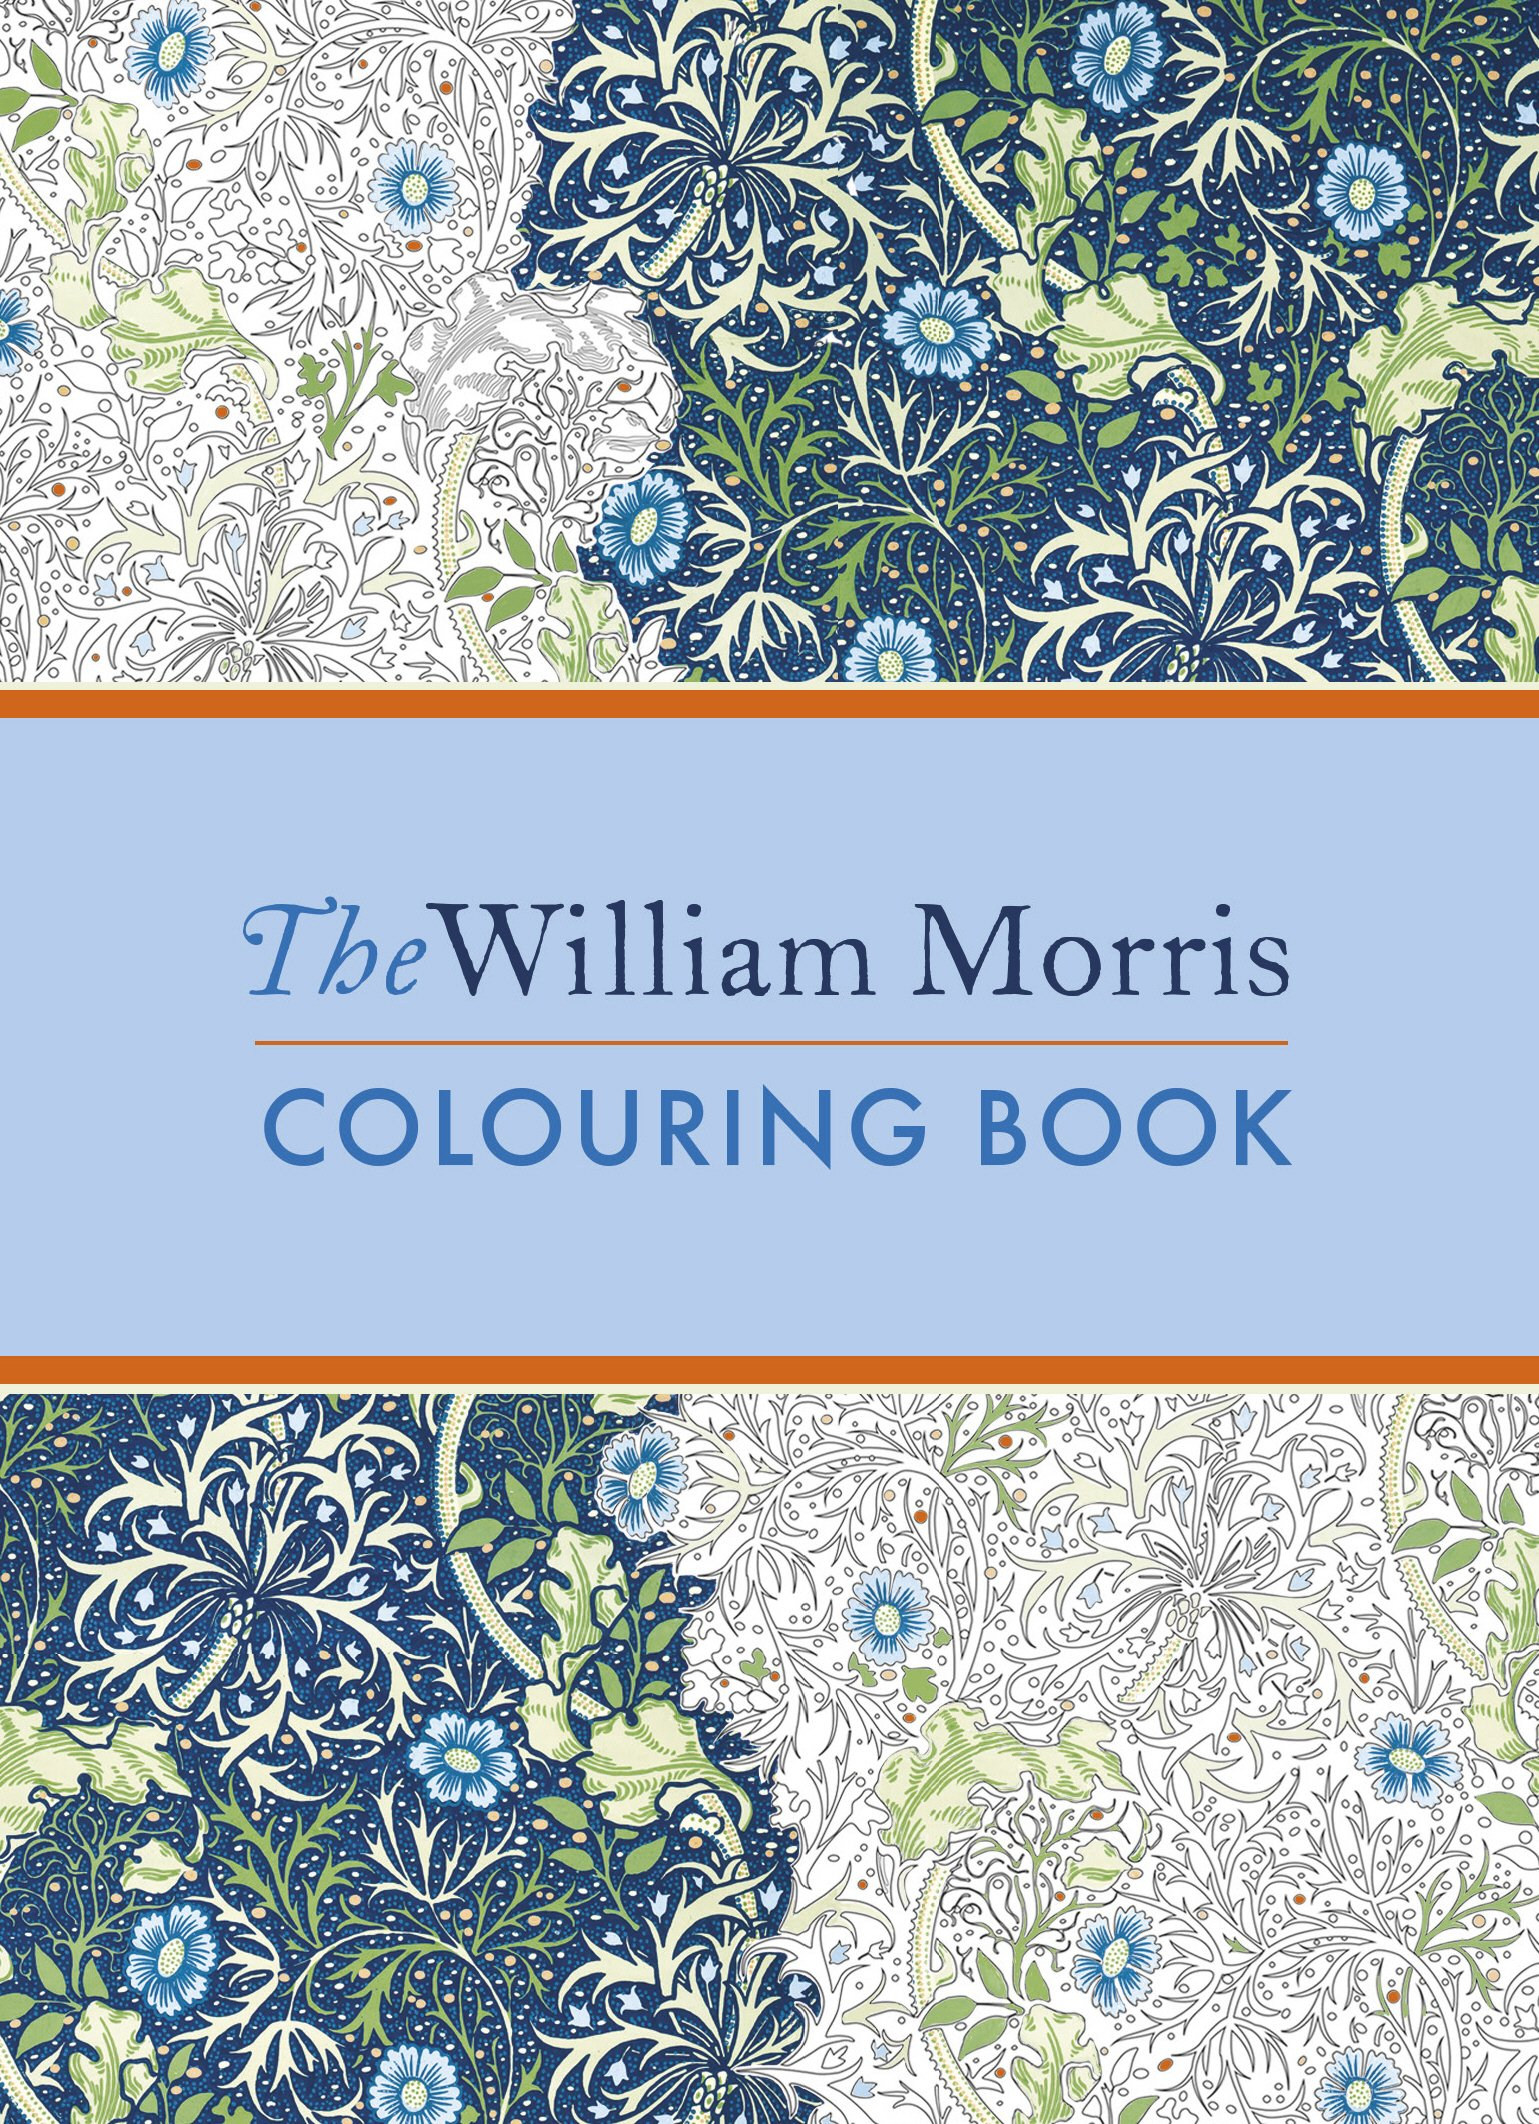 The William Morris Colouring Book by imusti